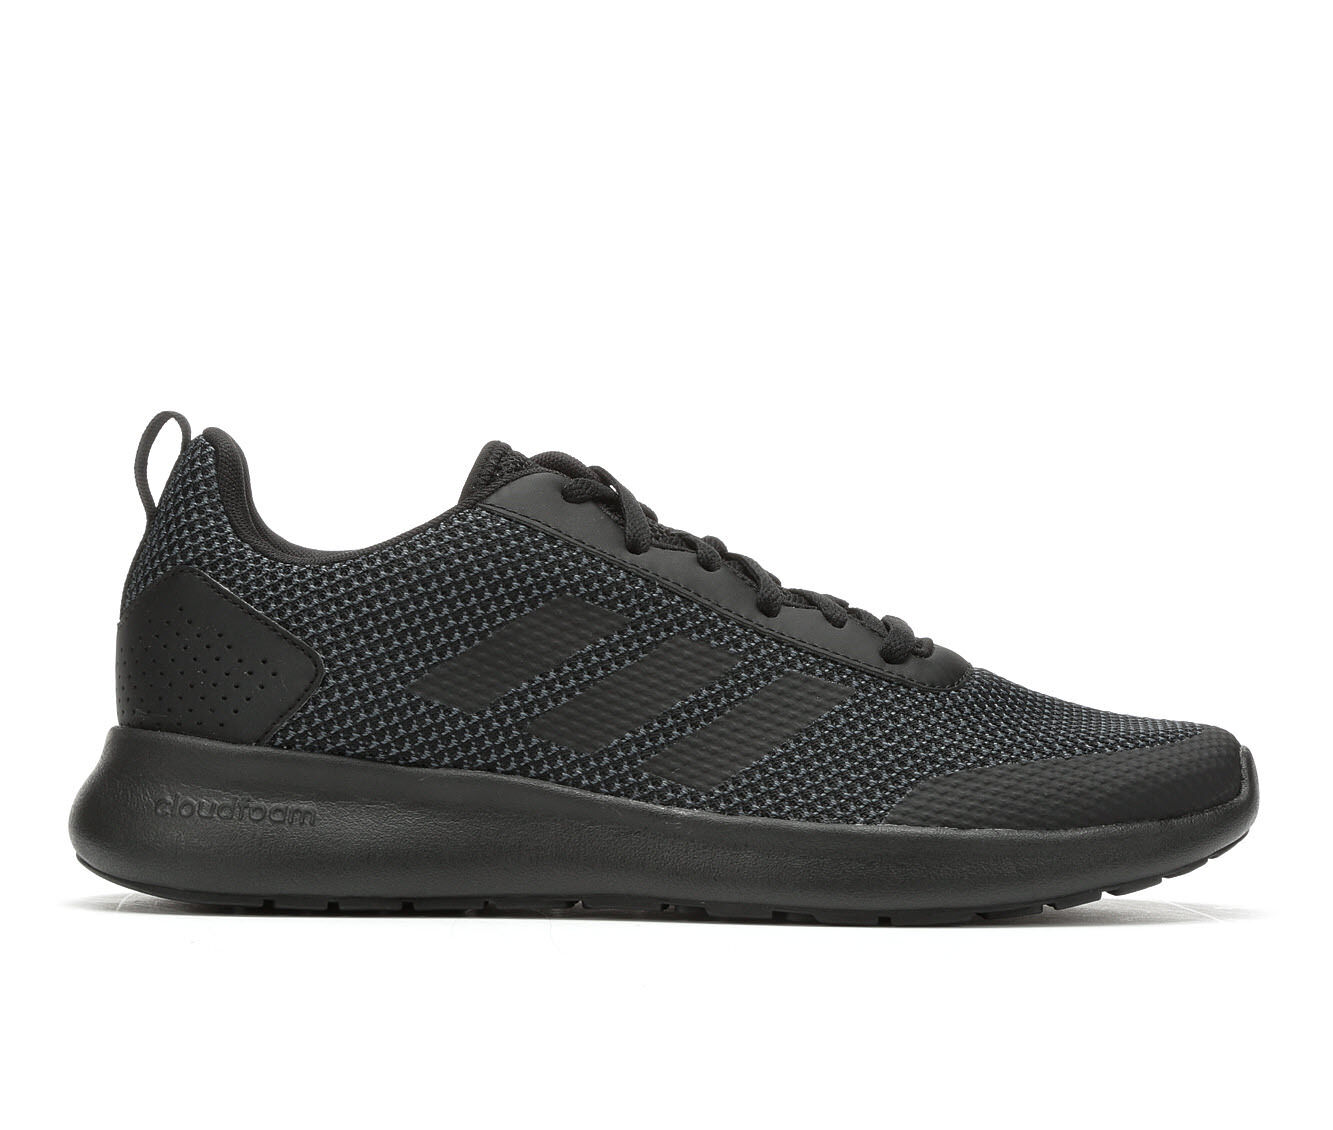 Men's Adidas Cloudfoam Element Race Running Shoes Black/Black